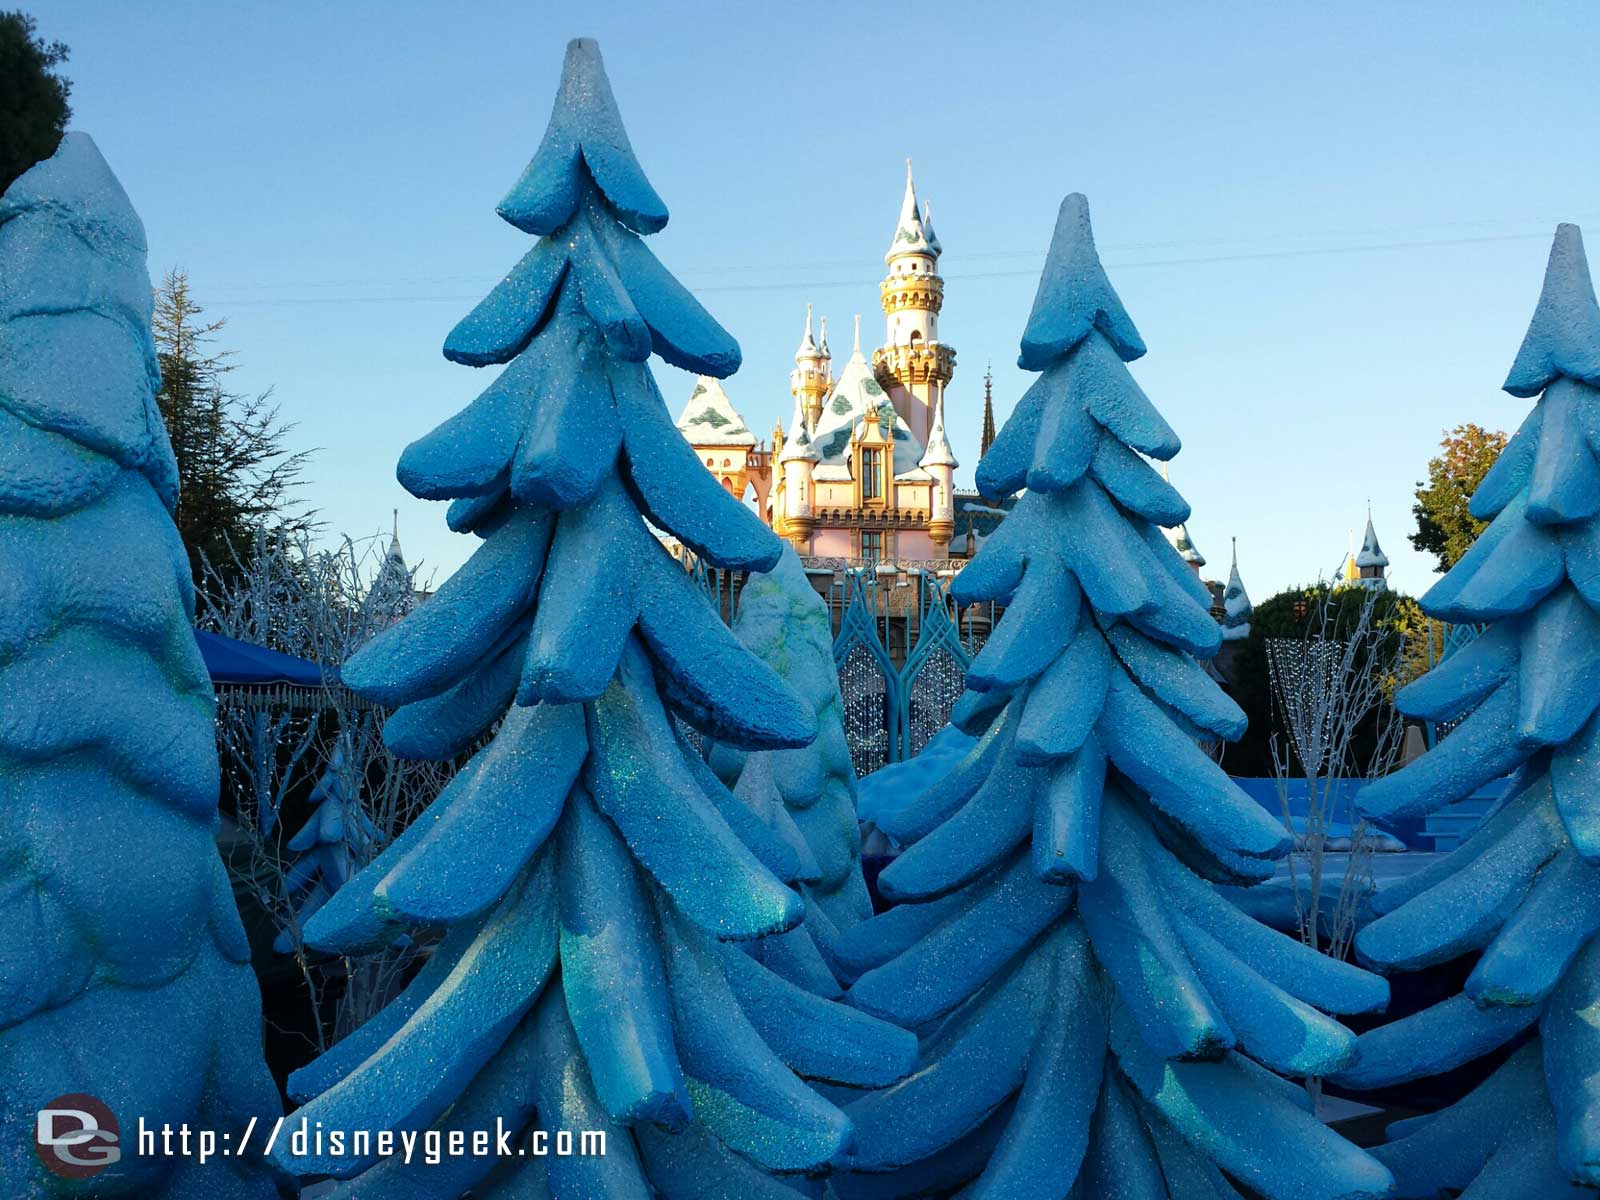 A forest of blue trees around the castle for the taping of the annual Christmas parade #Disneyland